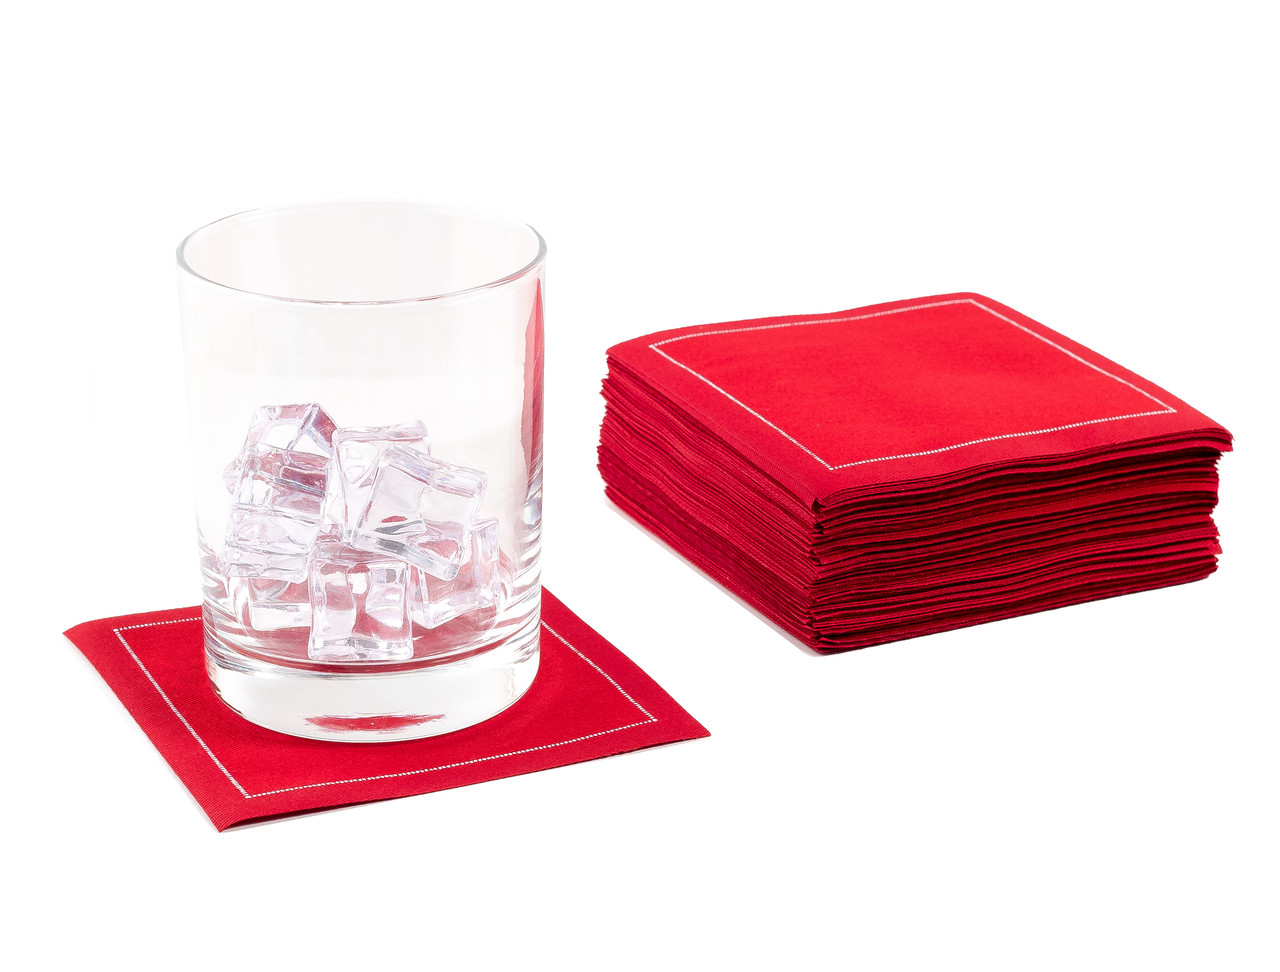 "Red Cotton Cocktail (200 GSM) - 4.5"" x 4.5"" - 1200 Units"